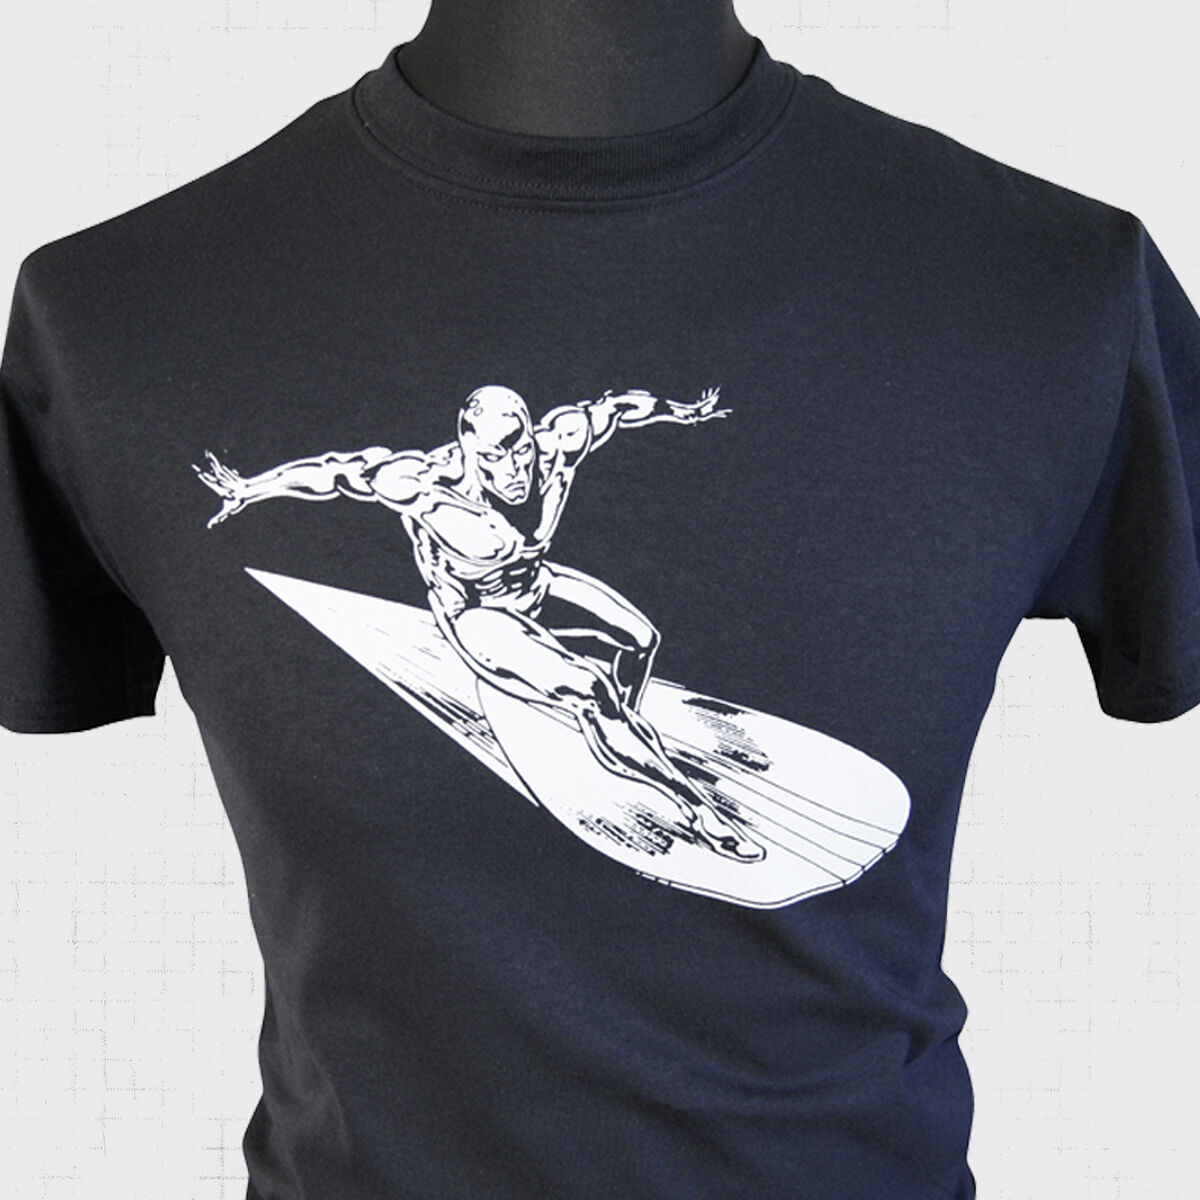 The Silver Surfer T Shirt Fantastic Four Retro Comic Super Hero Sci Fi Ebay